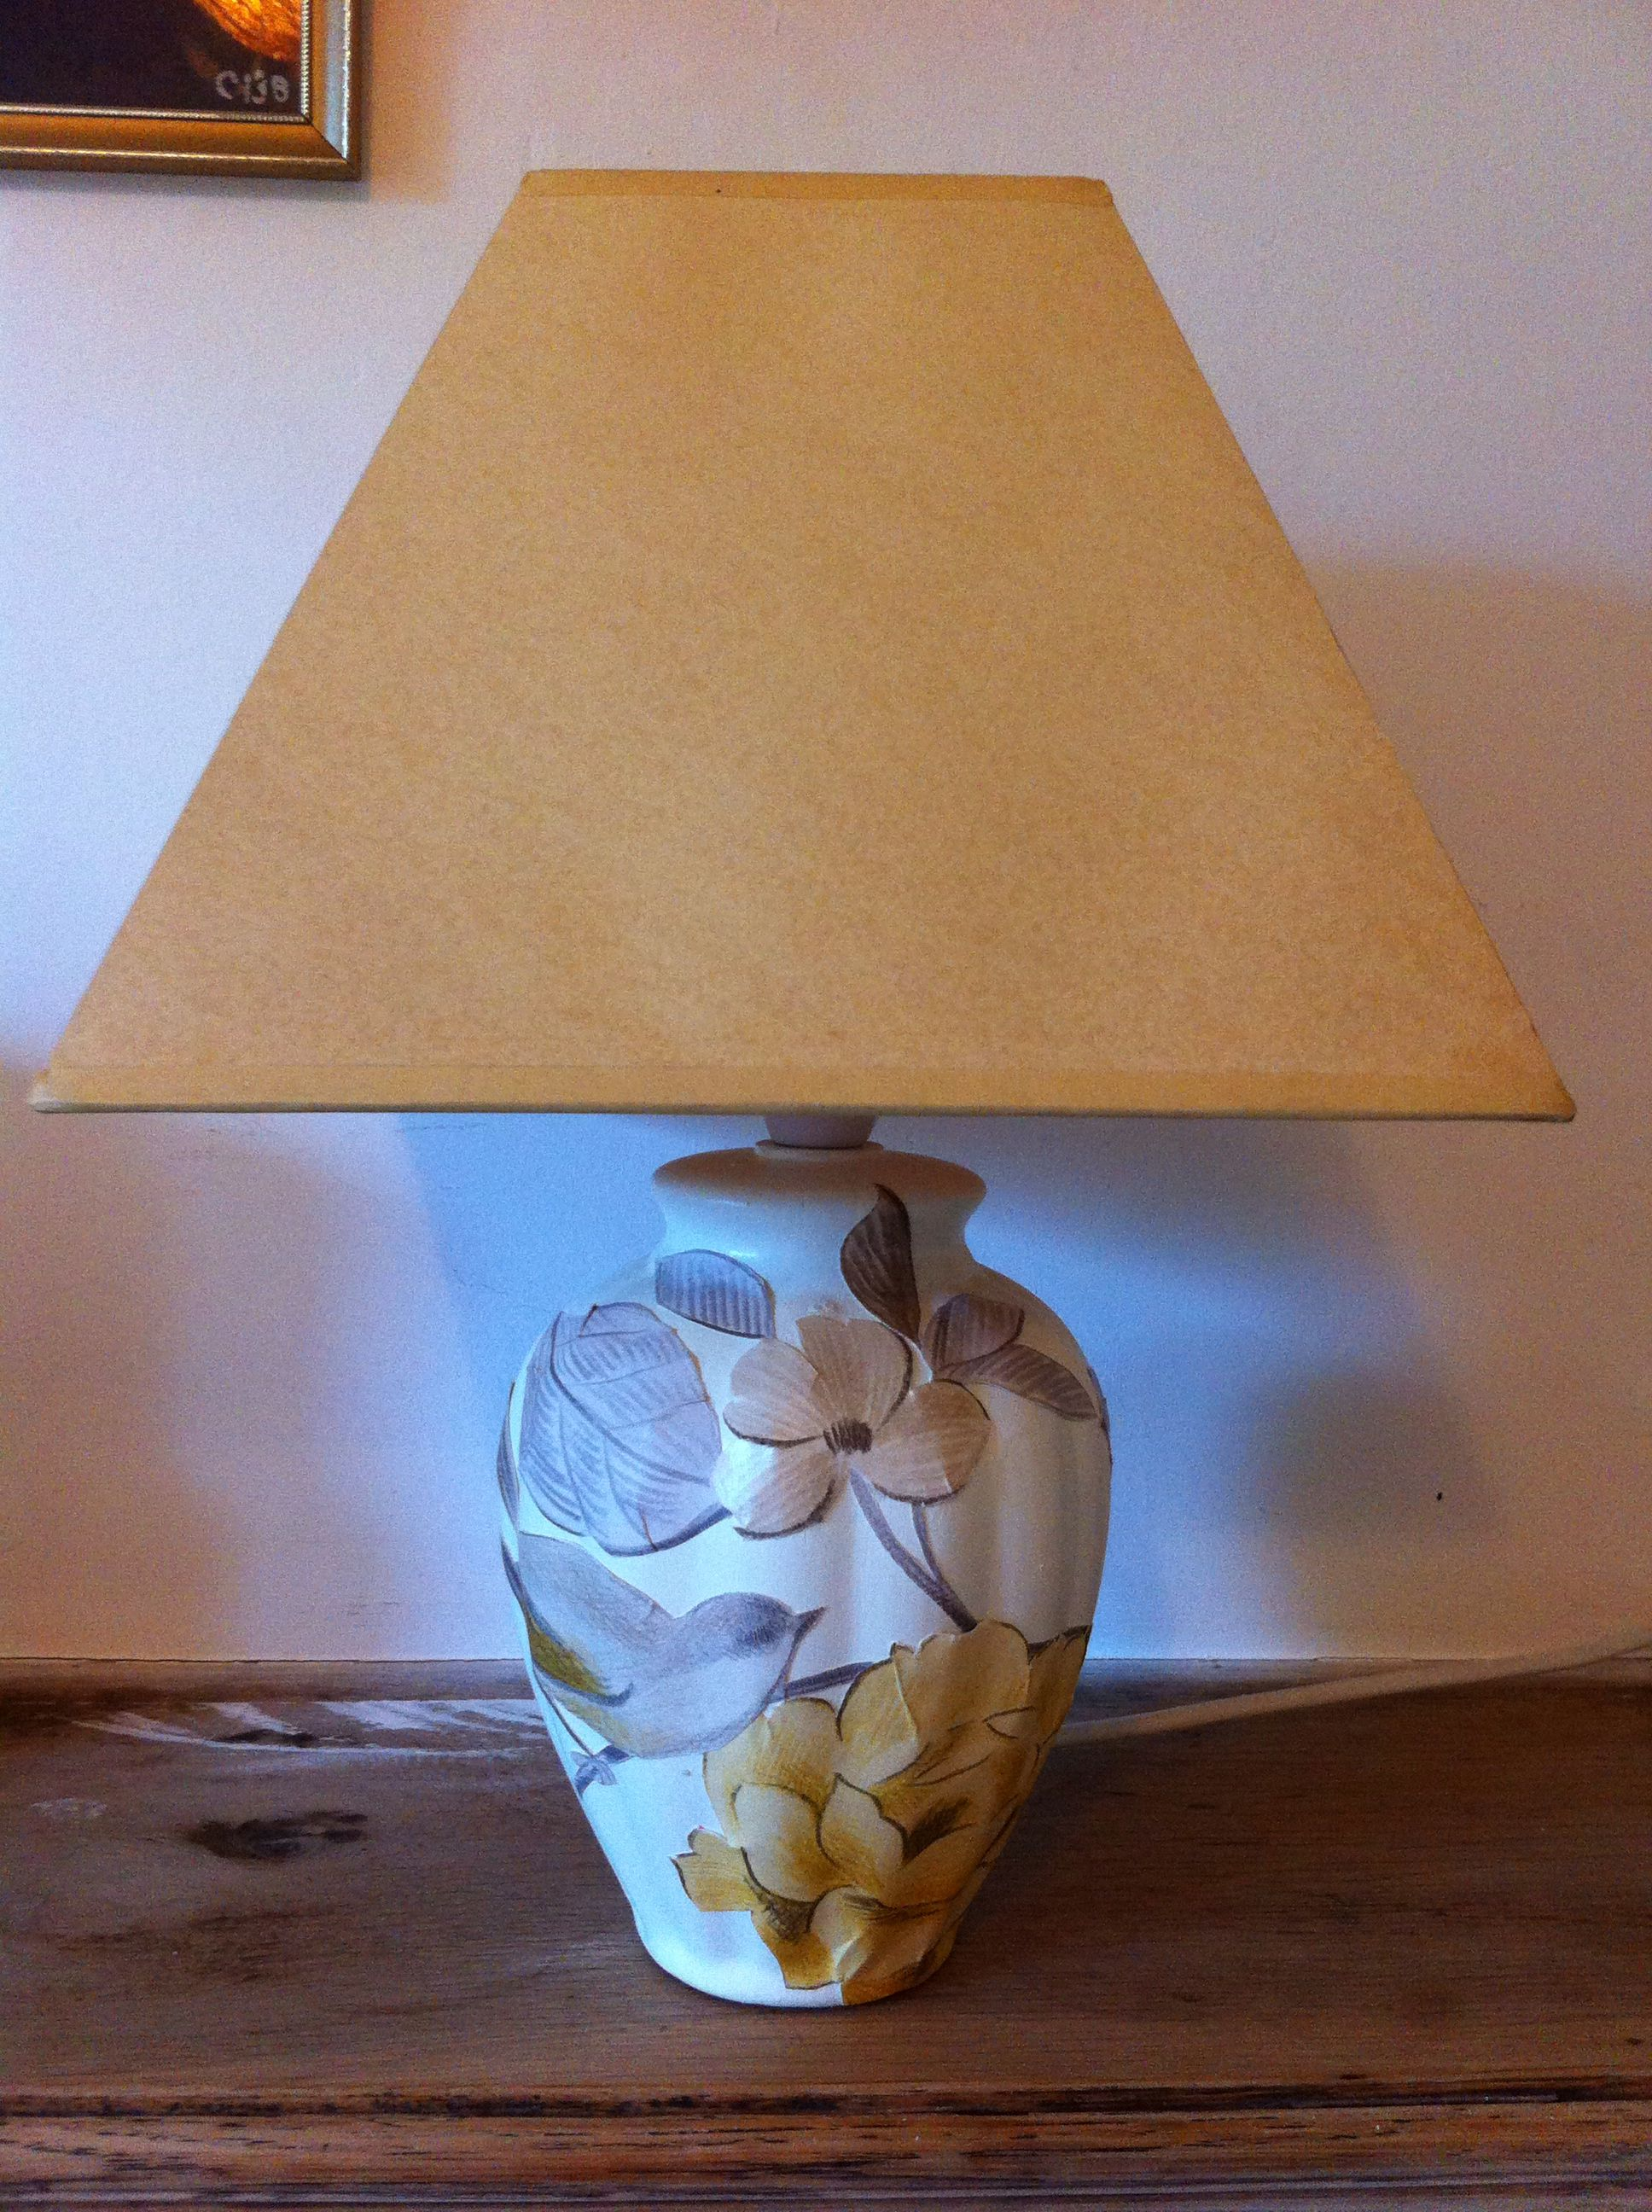 Decoupage lamp base with existing shade